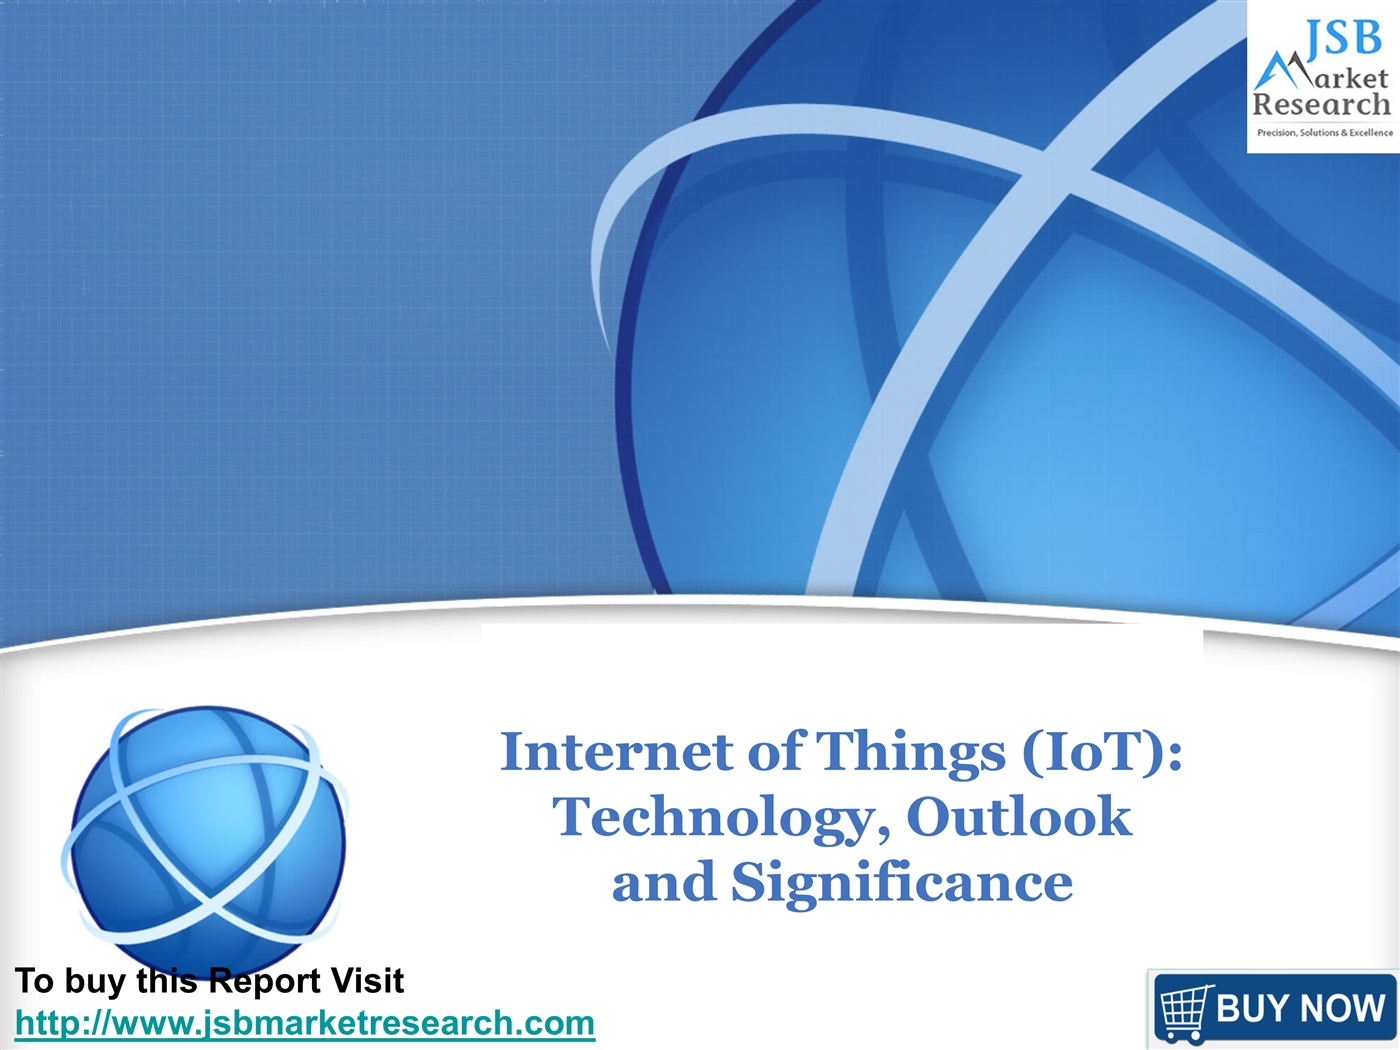 JSB Market Research: Internet of Things (IoT): Technology, Outlook